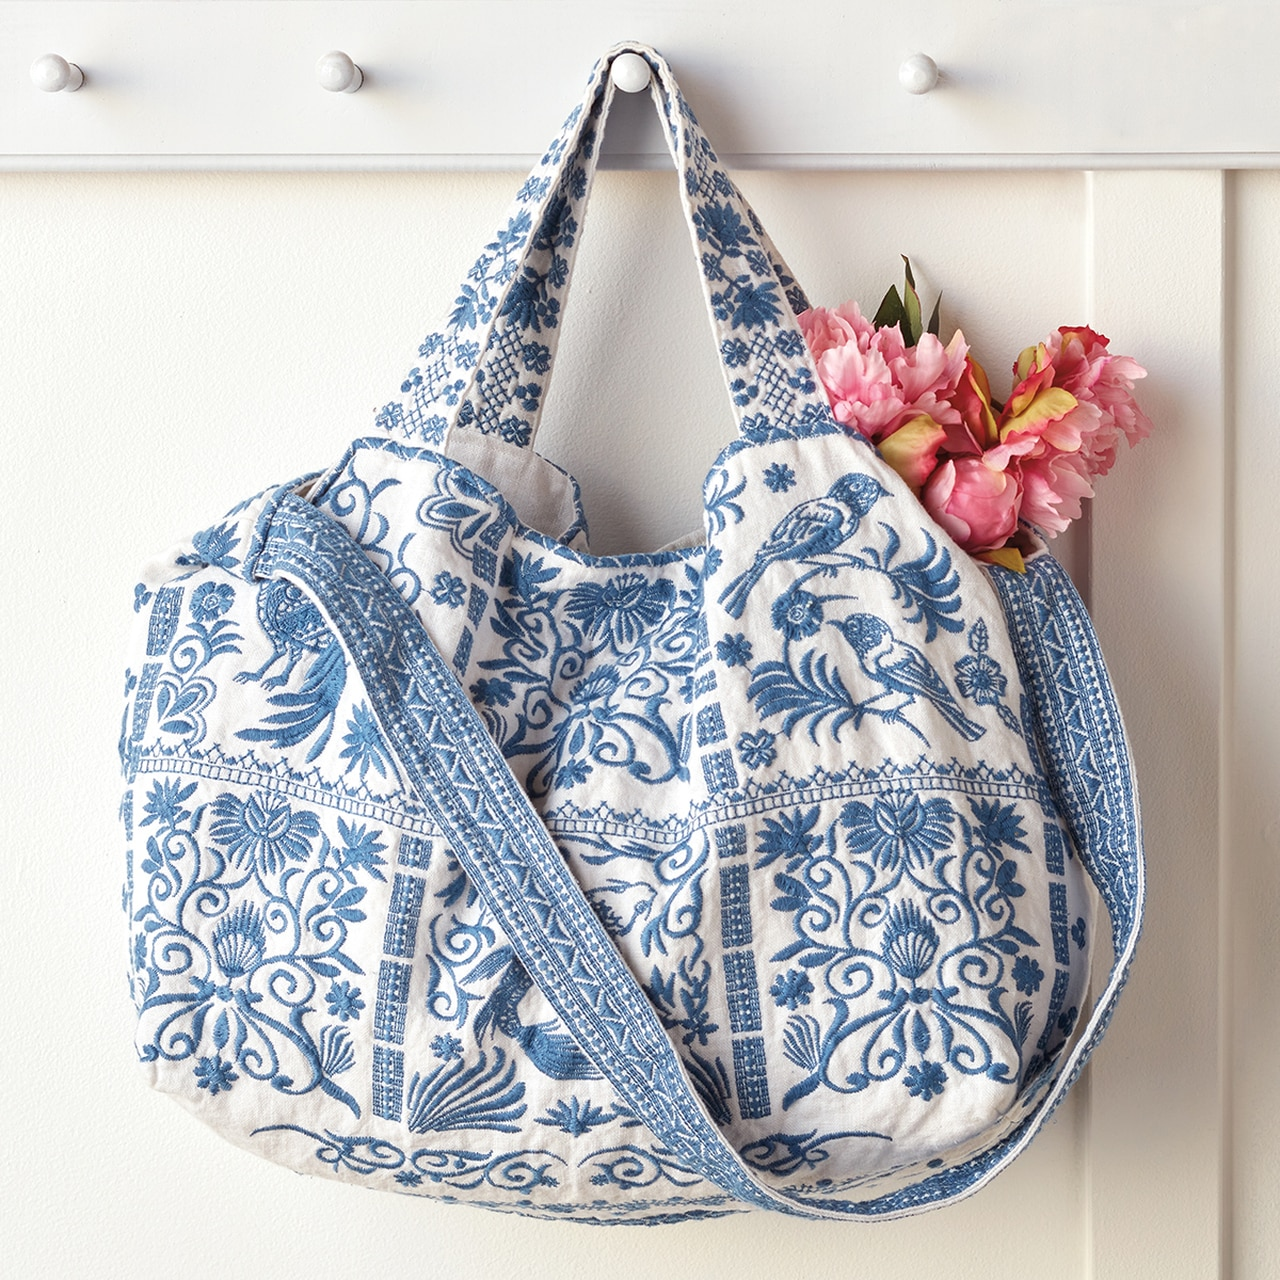 Blue and White Embroidered Tote